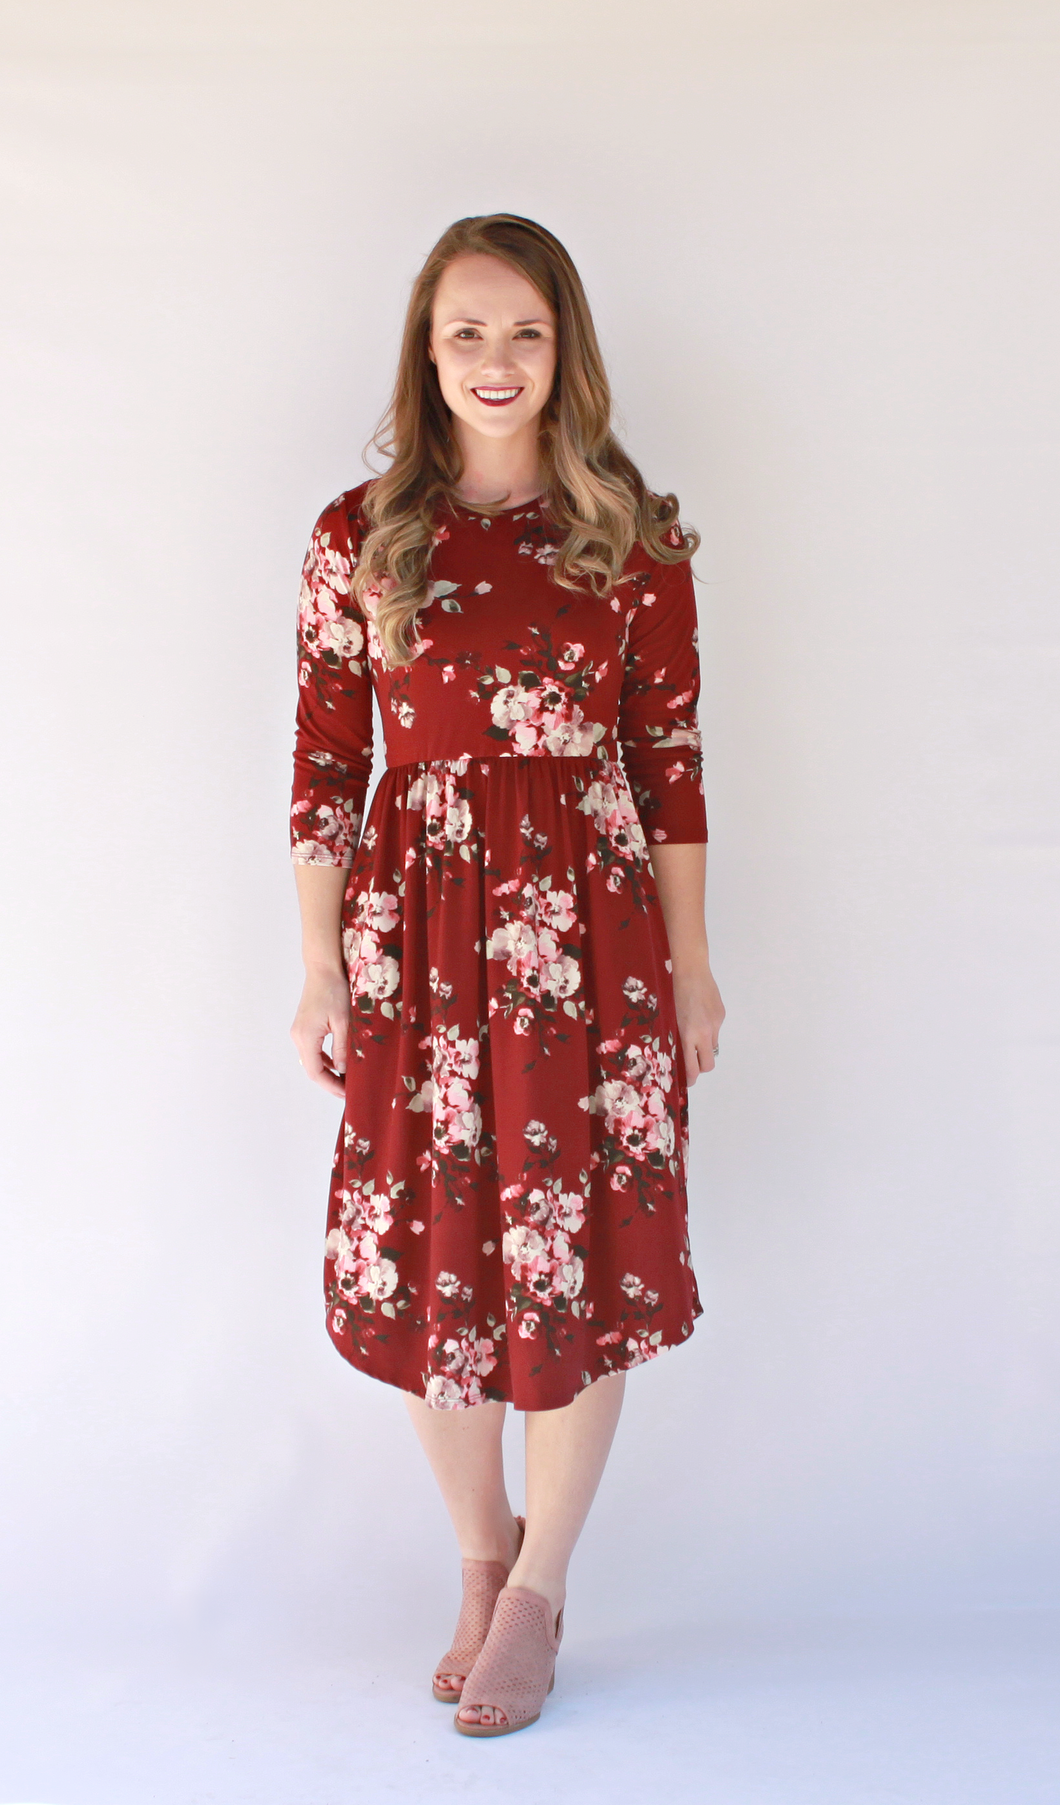 Fall Flowers Dress - Burgundy